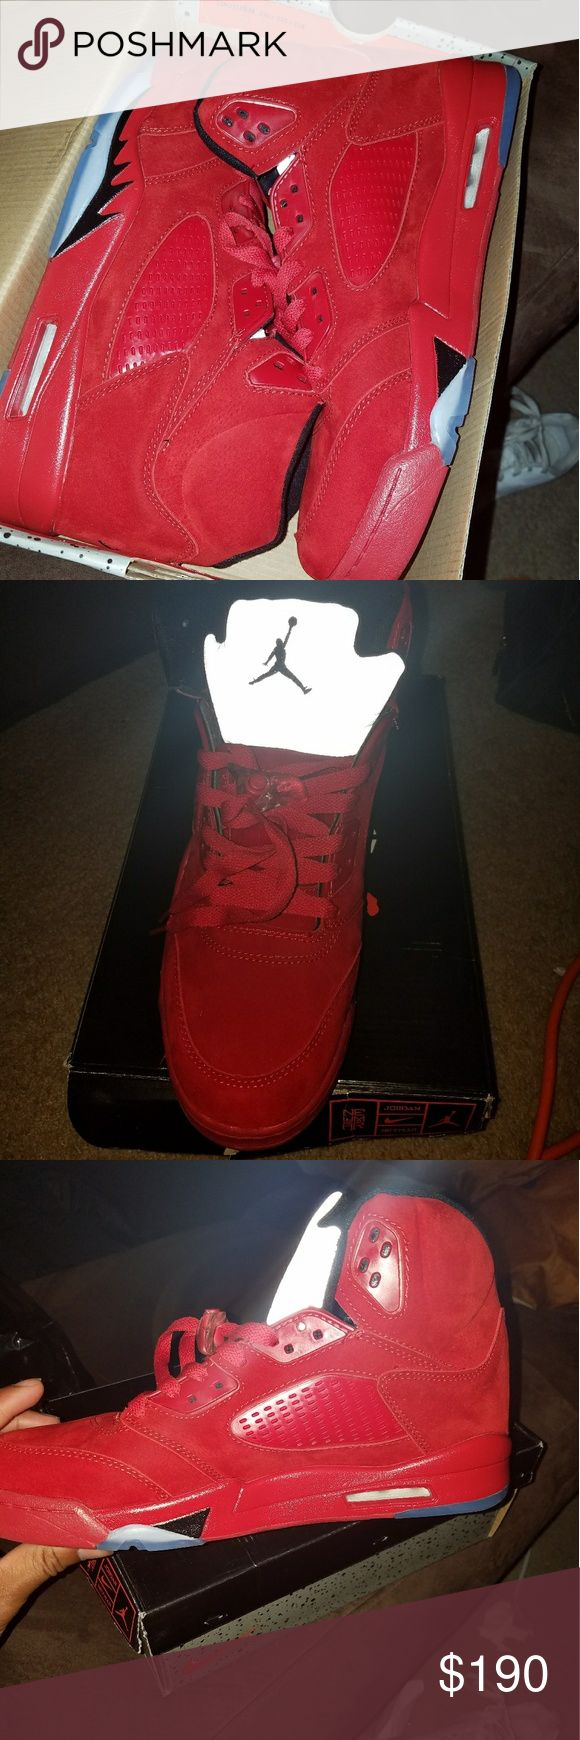 Custom Red Suede Jordan 5s Brand new, never been worn. Can post box tag to show they're custom. Jordan Shoes Sneakers